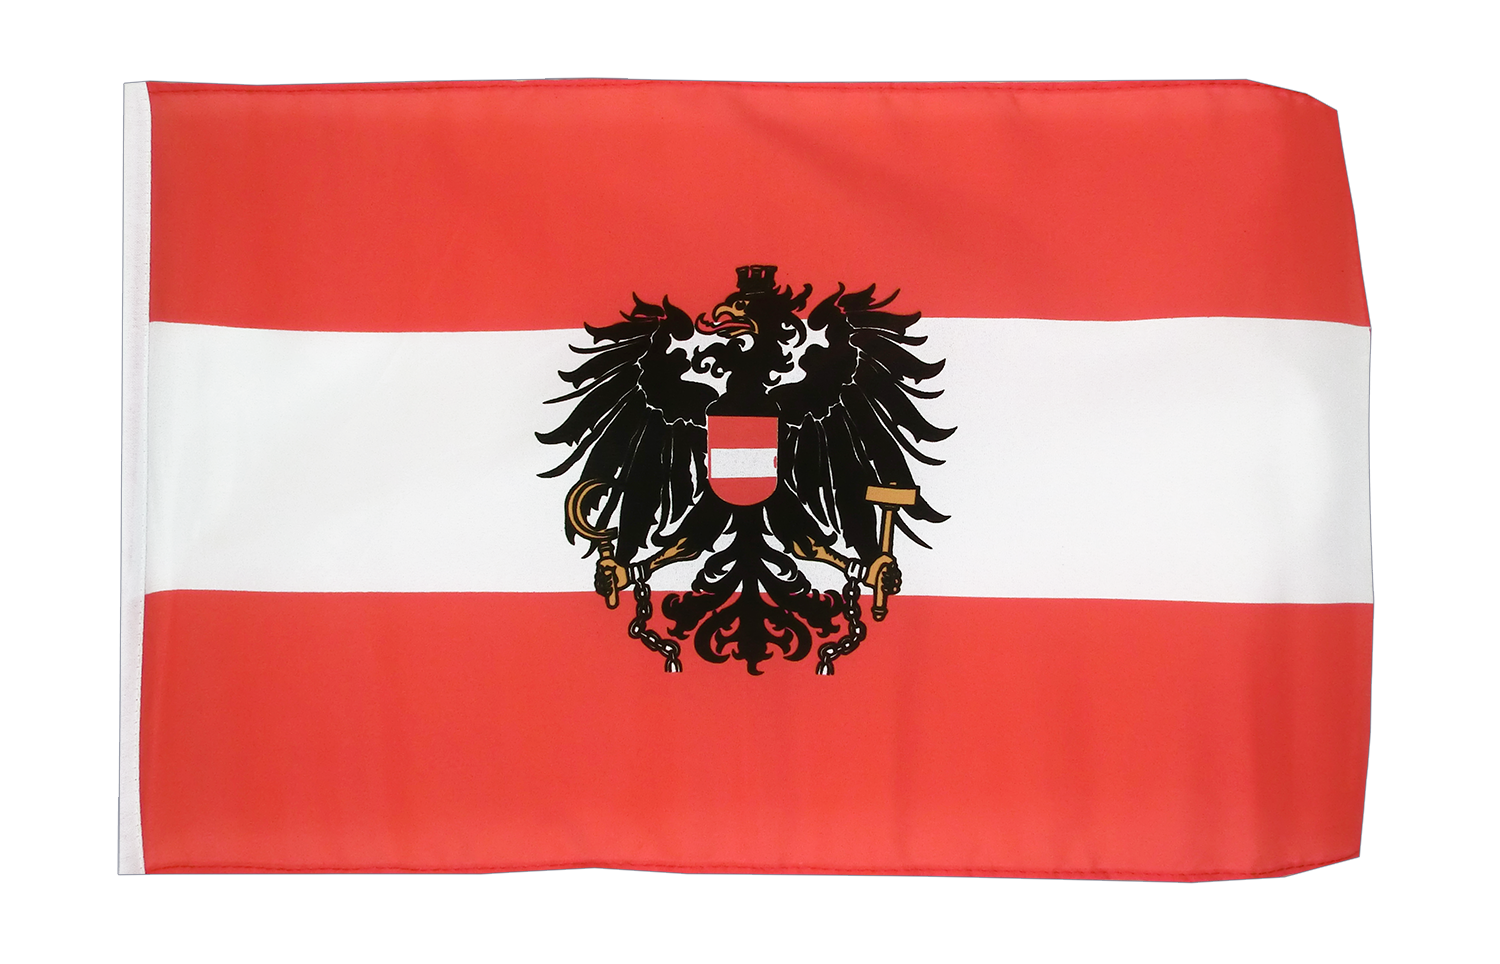 kleine sterreich adler flagge 30 x 45 cm flaggenplatz. Black Bedroom Furniture Sets. Home Design Ideas